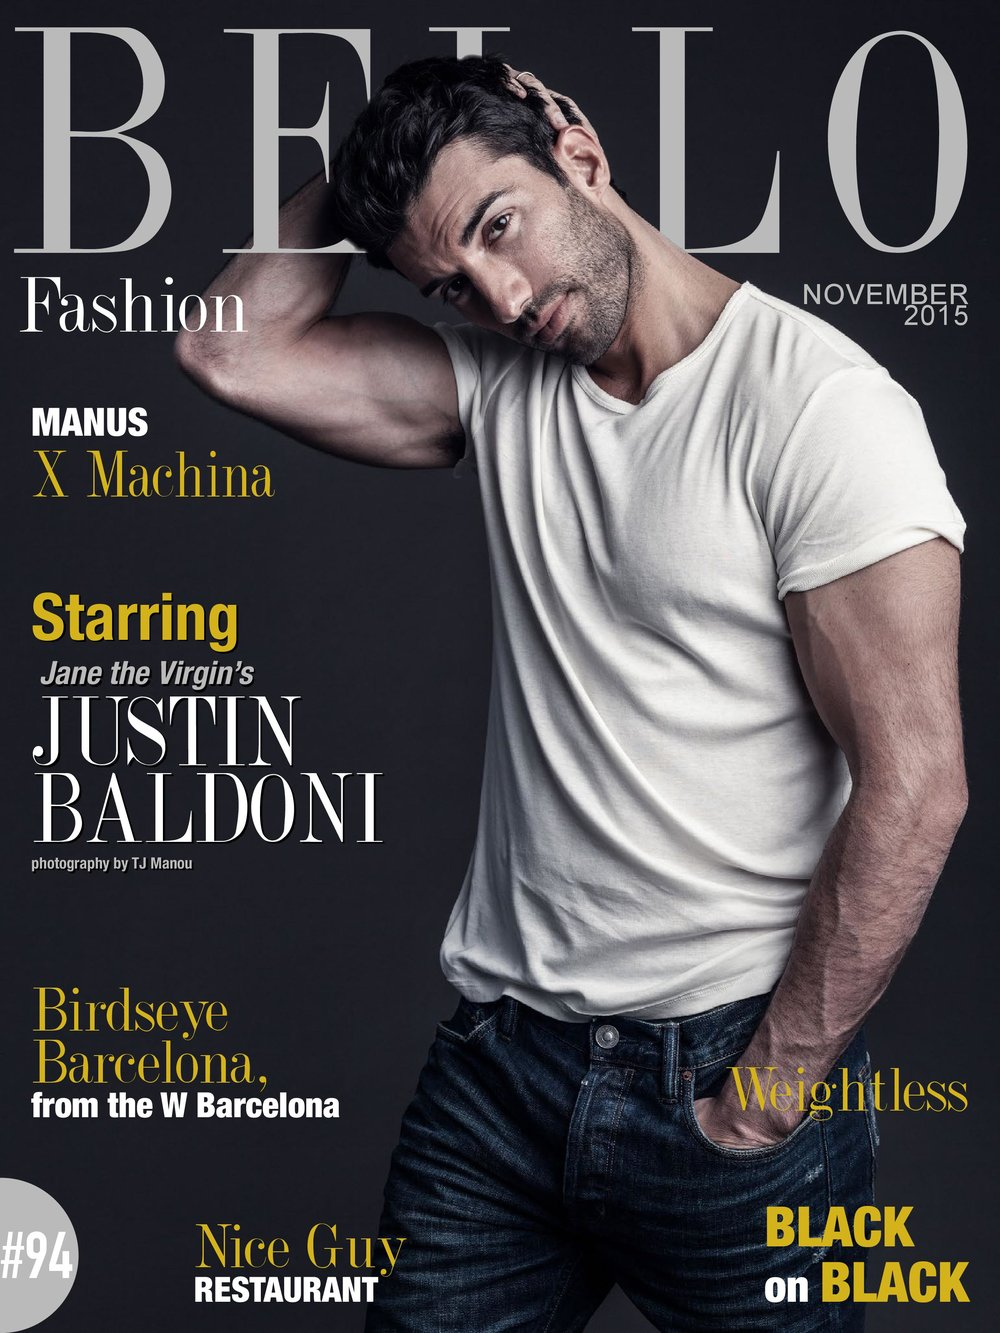 PC20_BelloMag_JustinBaldoni_Nov15 (1).jpg